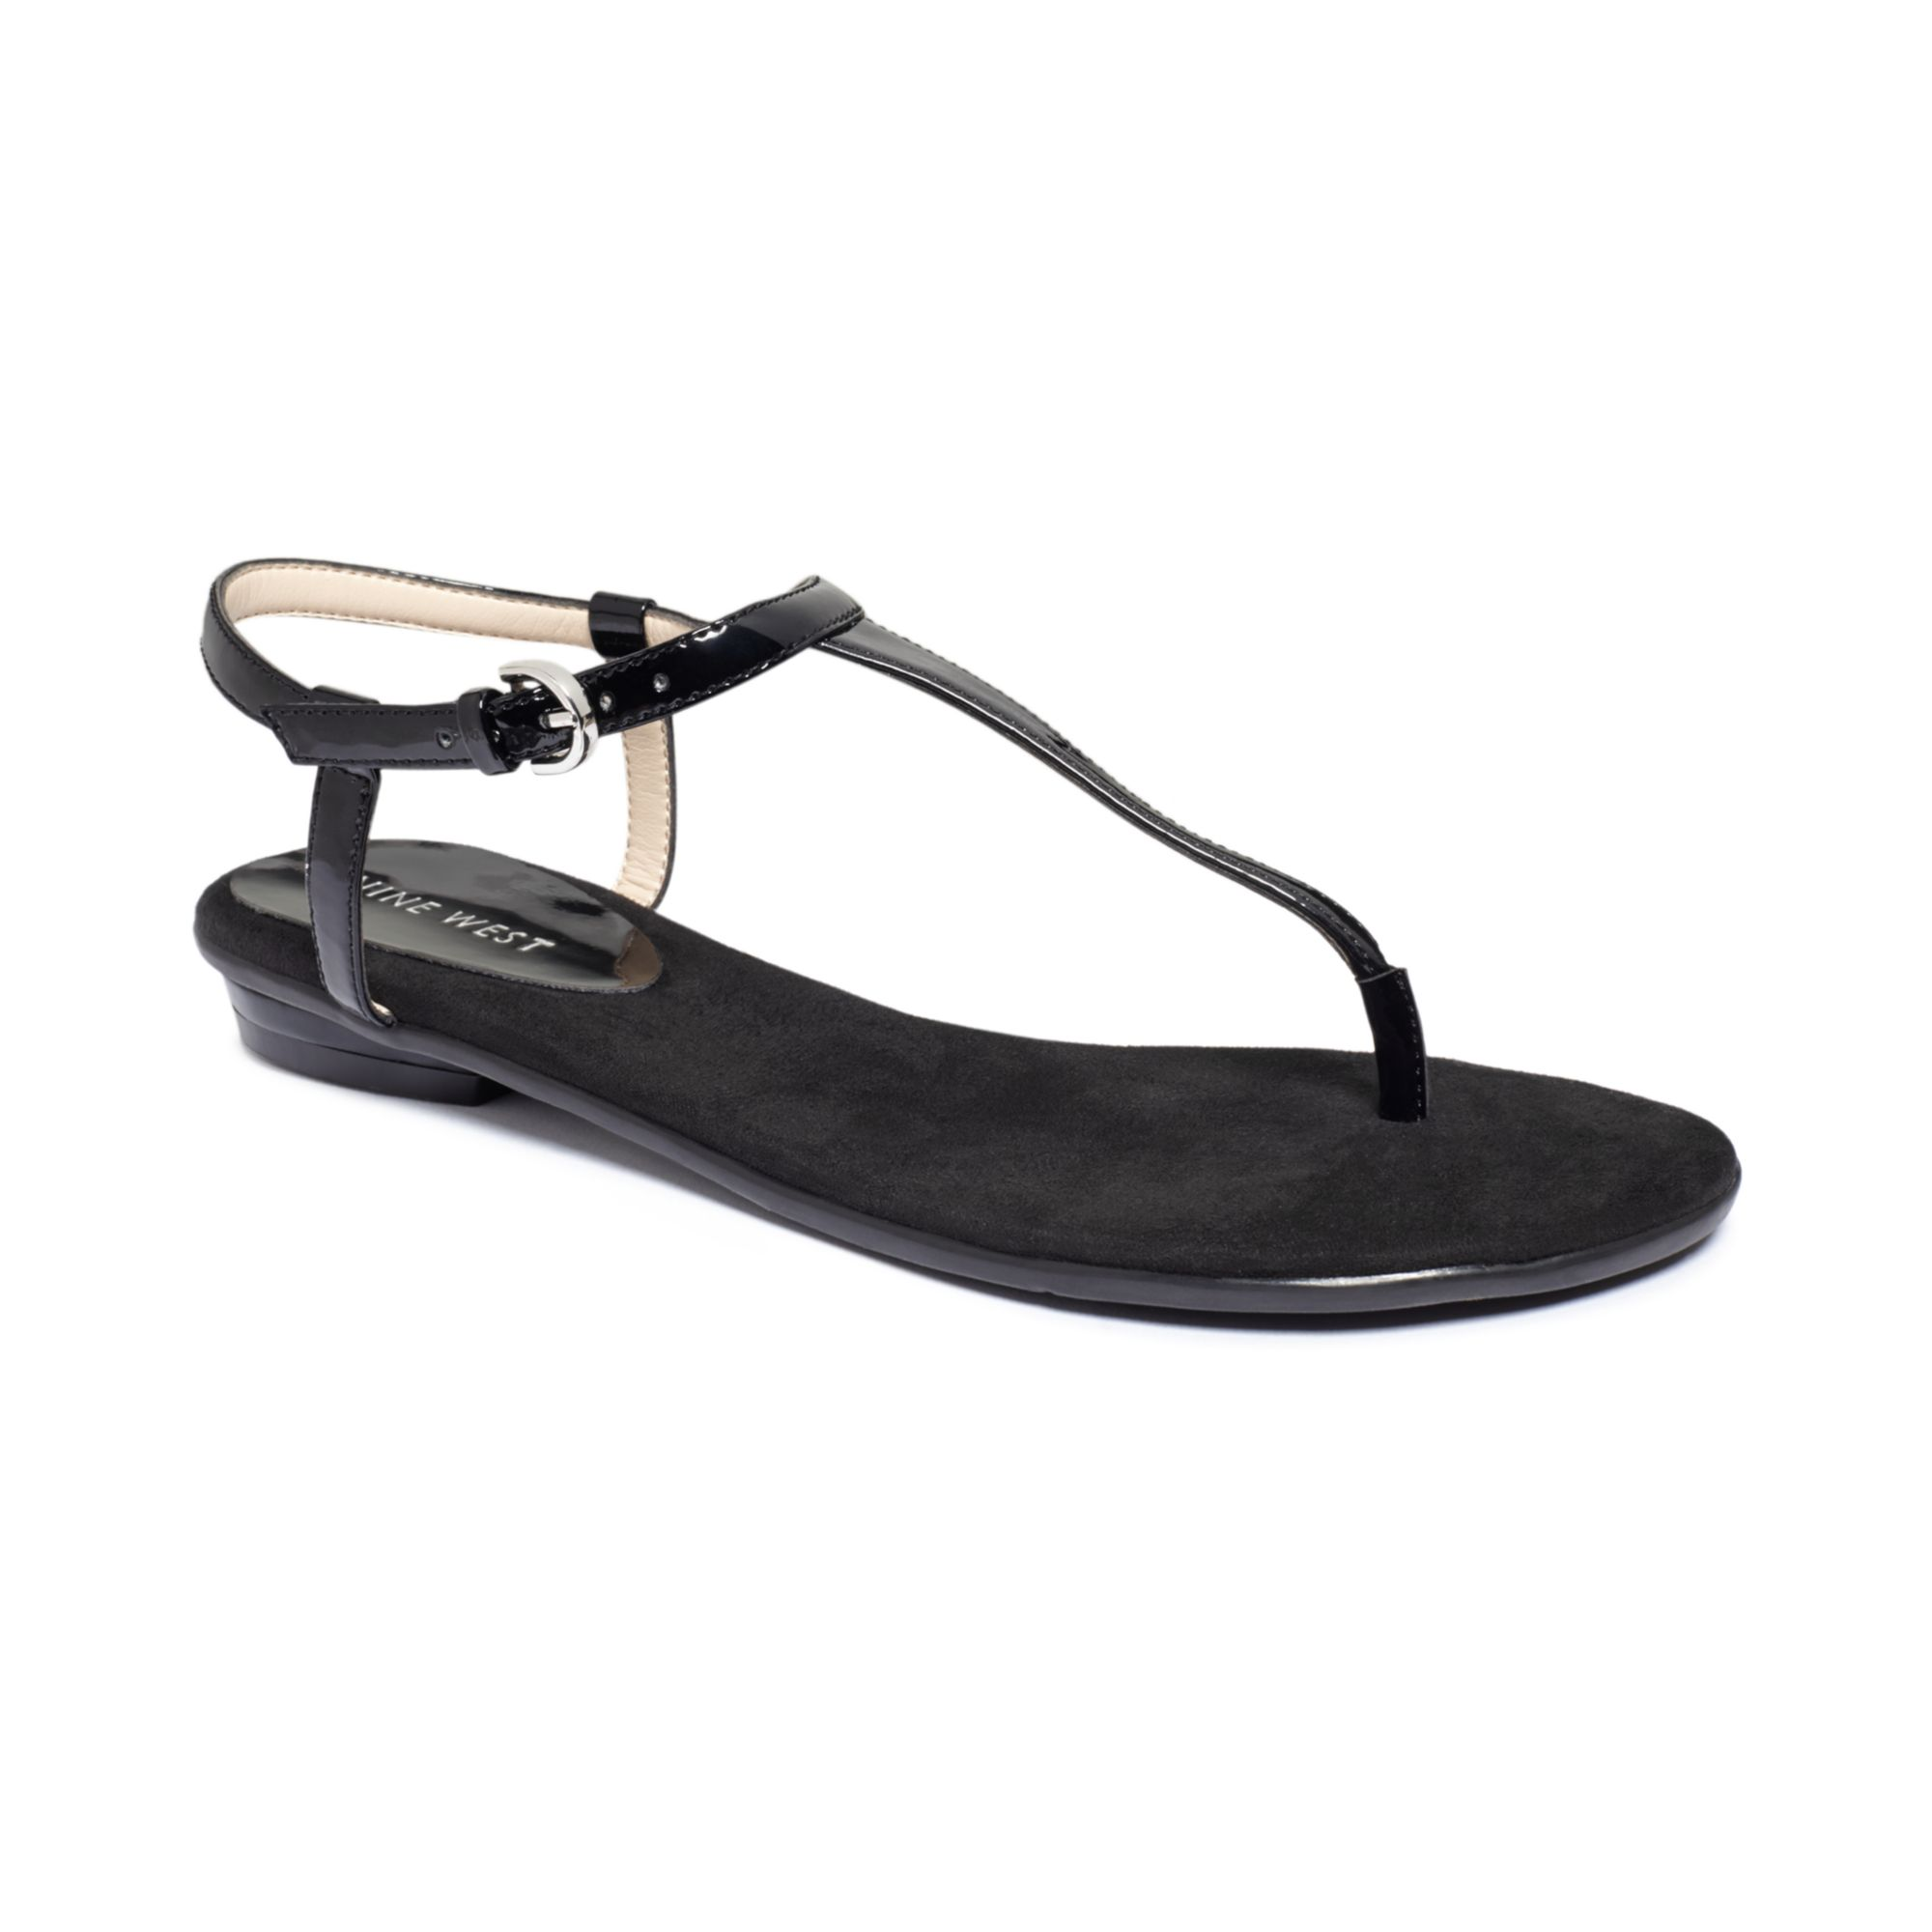 Lyst - Nine West Izzelly Flat Thong Sandals in Black